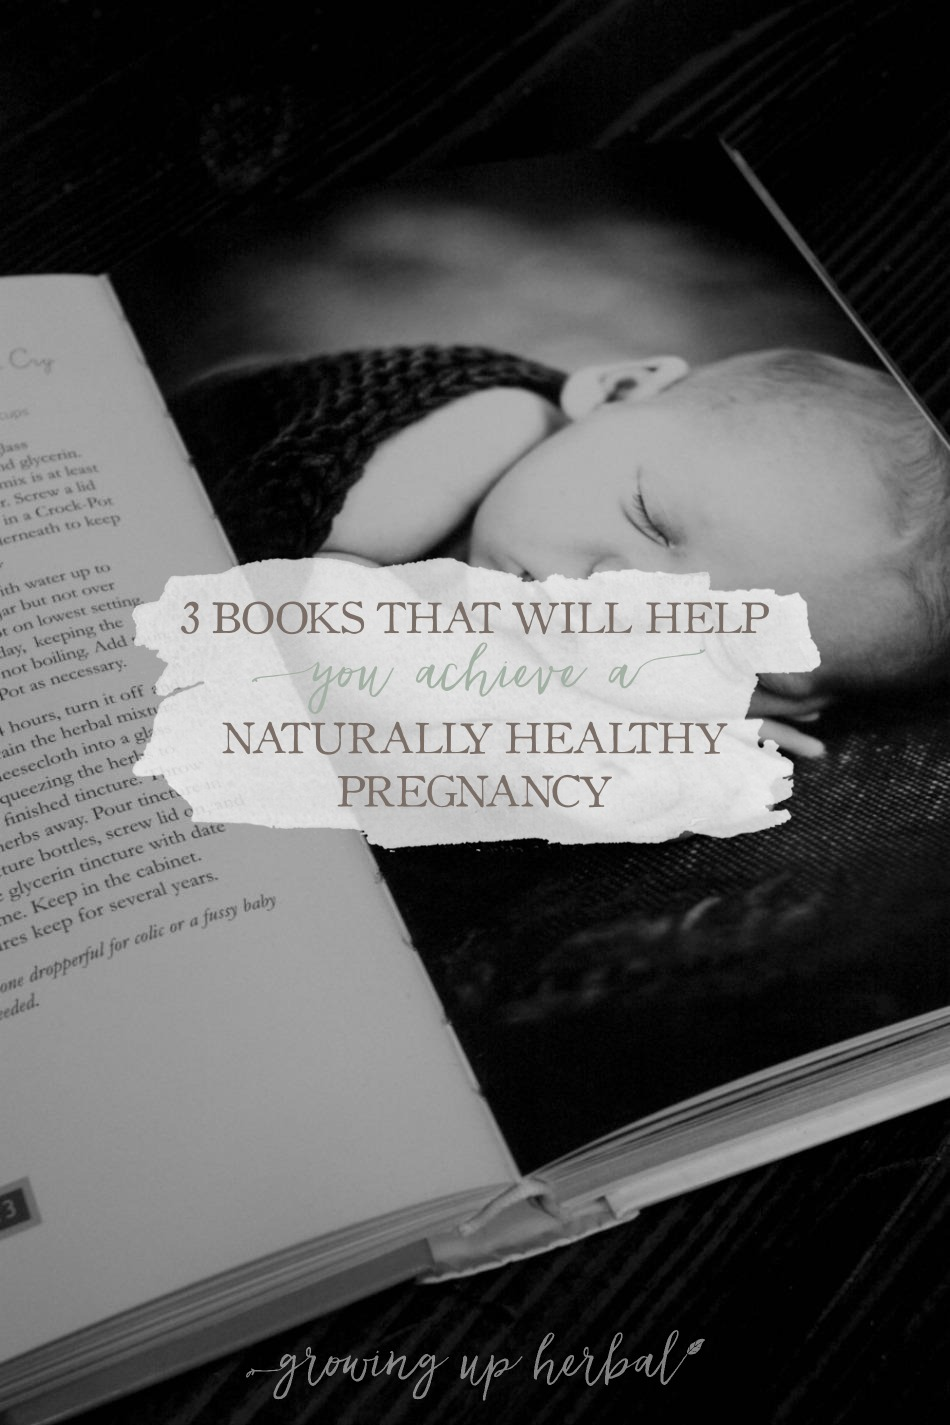 3 Books That Will Help You Achieve A Naturally Healthy Pregnancy